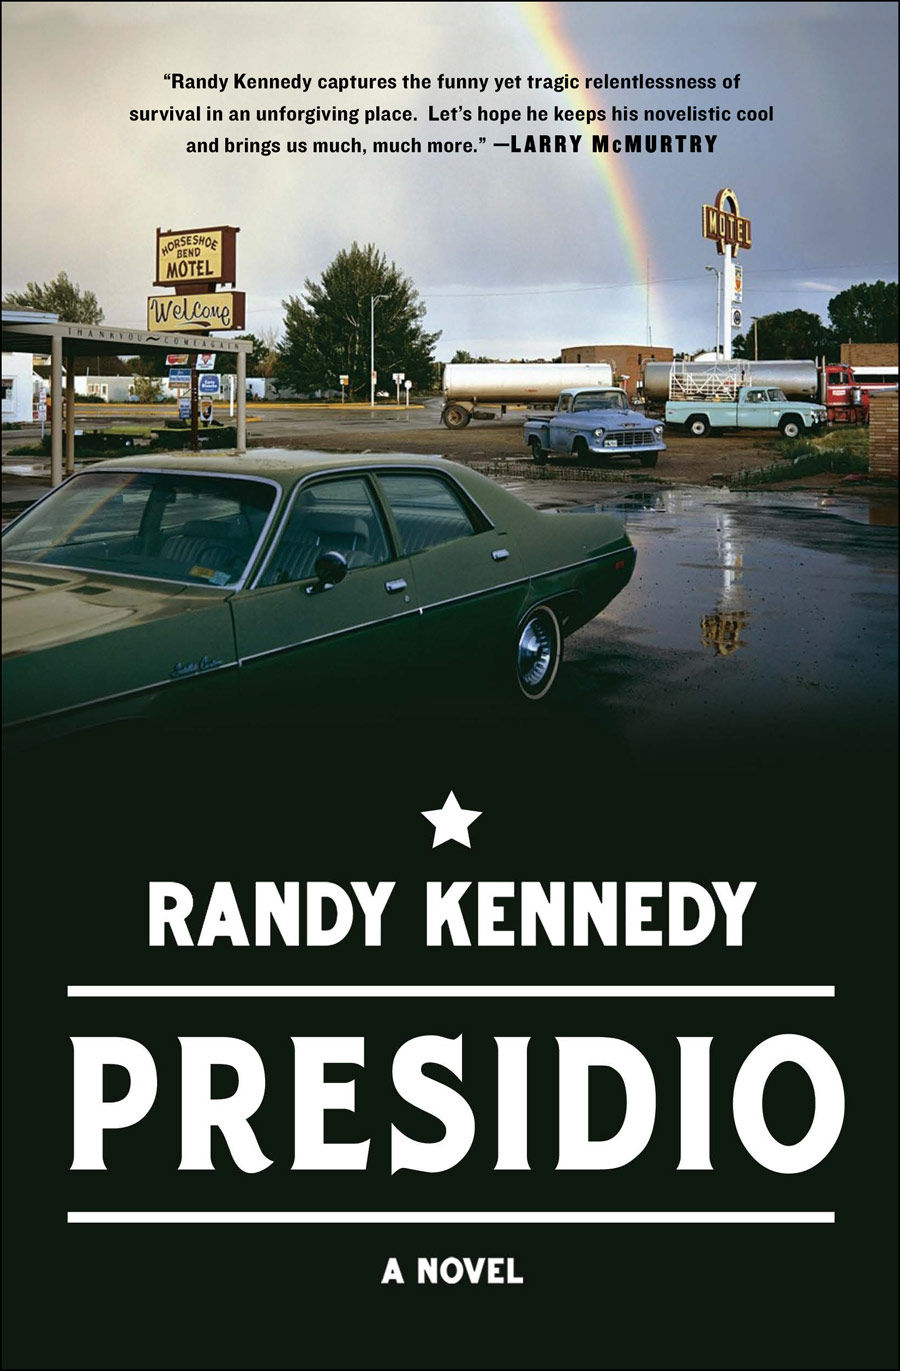 Presidio - Set in the 1970s in the vast and arid landscape of the Texas panhandle, this darkly comic and stunningly mature literary debut tells the story of a car thief and his brother who set out to recover some stolen money and inadvertently kidnap a Mennonite girl who has her own reasons for being on the run. Troy Falconer returns home after years of working as a solitary car thief to help his younger brother, Harlan, search for his wife, who has run away with the little money he had. When they steal a station wagon for the journey, the brothers accidentally kidnap Martha Zacharias, a Mennonite girl asleep in the back of the car. Martha turns out to be a stubborn survivor who refuses to be sent home, so together these unlikely road companions attempt to escape across the Mexican border, pursued by the police and Martha's vengeful father. The story is told partly through Troy's journal, in which he chronicles his encounters with con artists, down-and-outers, and roadside philosophers, people looking for fast money, human connection, or a home long since vanished. The journal details a breakdown that has left Troy unable to function in conventional society; he is reduced to haunting motels, stealing from men roughly his size, living with their possessions in order to have none of his own and all but disappearing into their identities. With a page-turning plot about a kidnapped child, gorgeously written scenes that probe the soul of the American West, and an austere landscape as real as any character, Presidio packs a powerful punch of anomie, dark humor, pathos, and suspense.